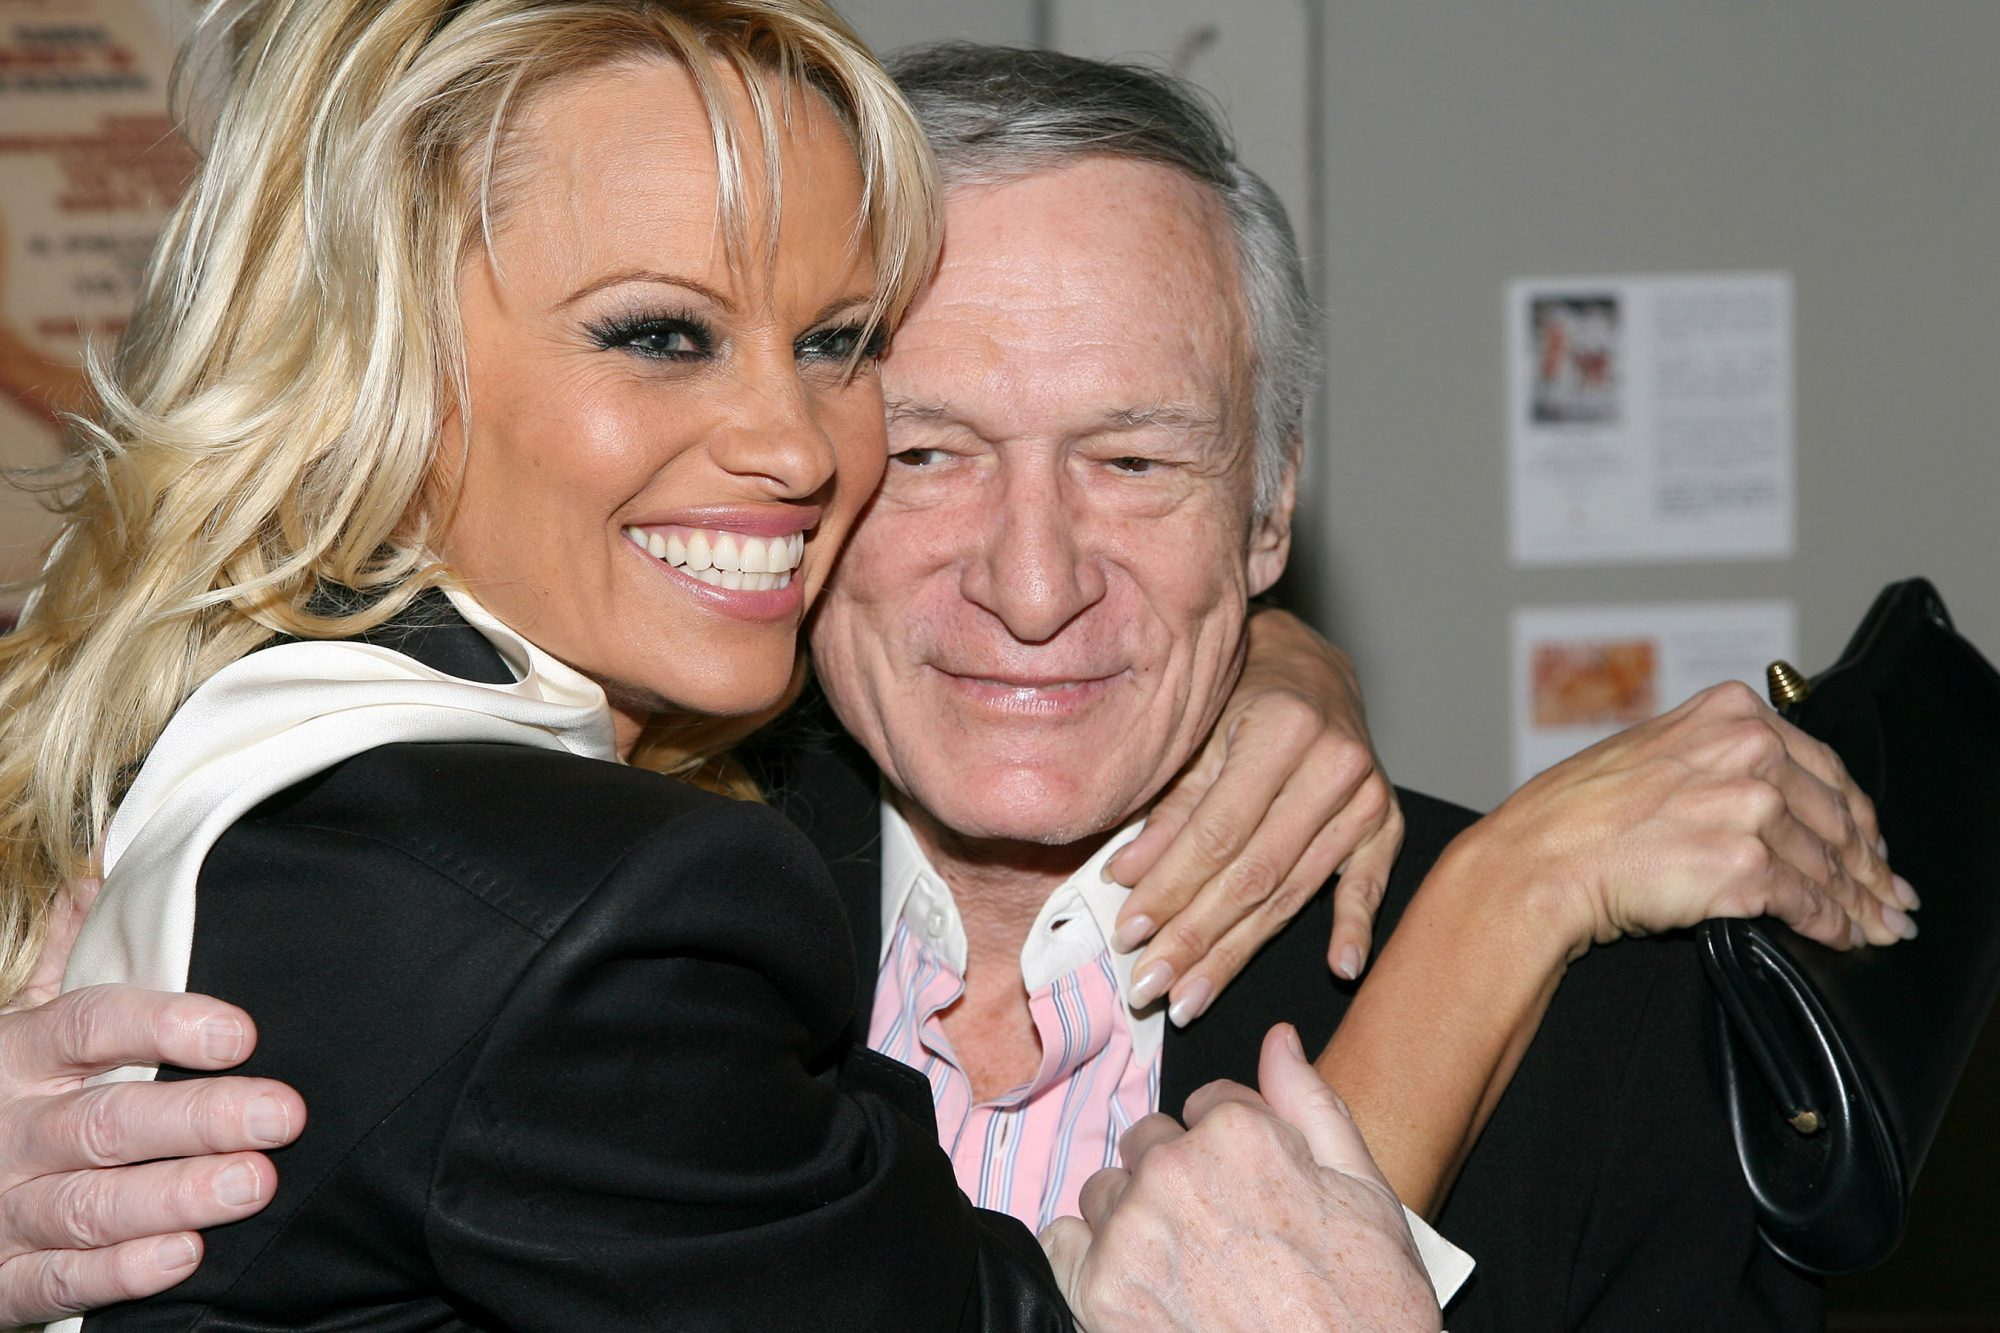 Hugh Hefner and International Images Launch the Playboy Legacy Collection at Republic